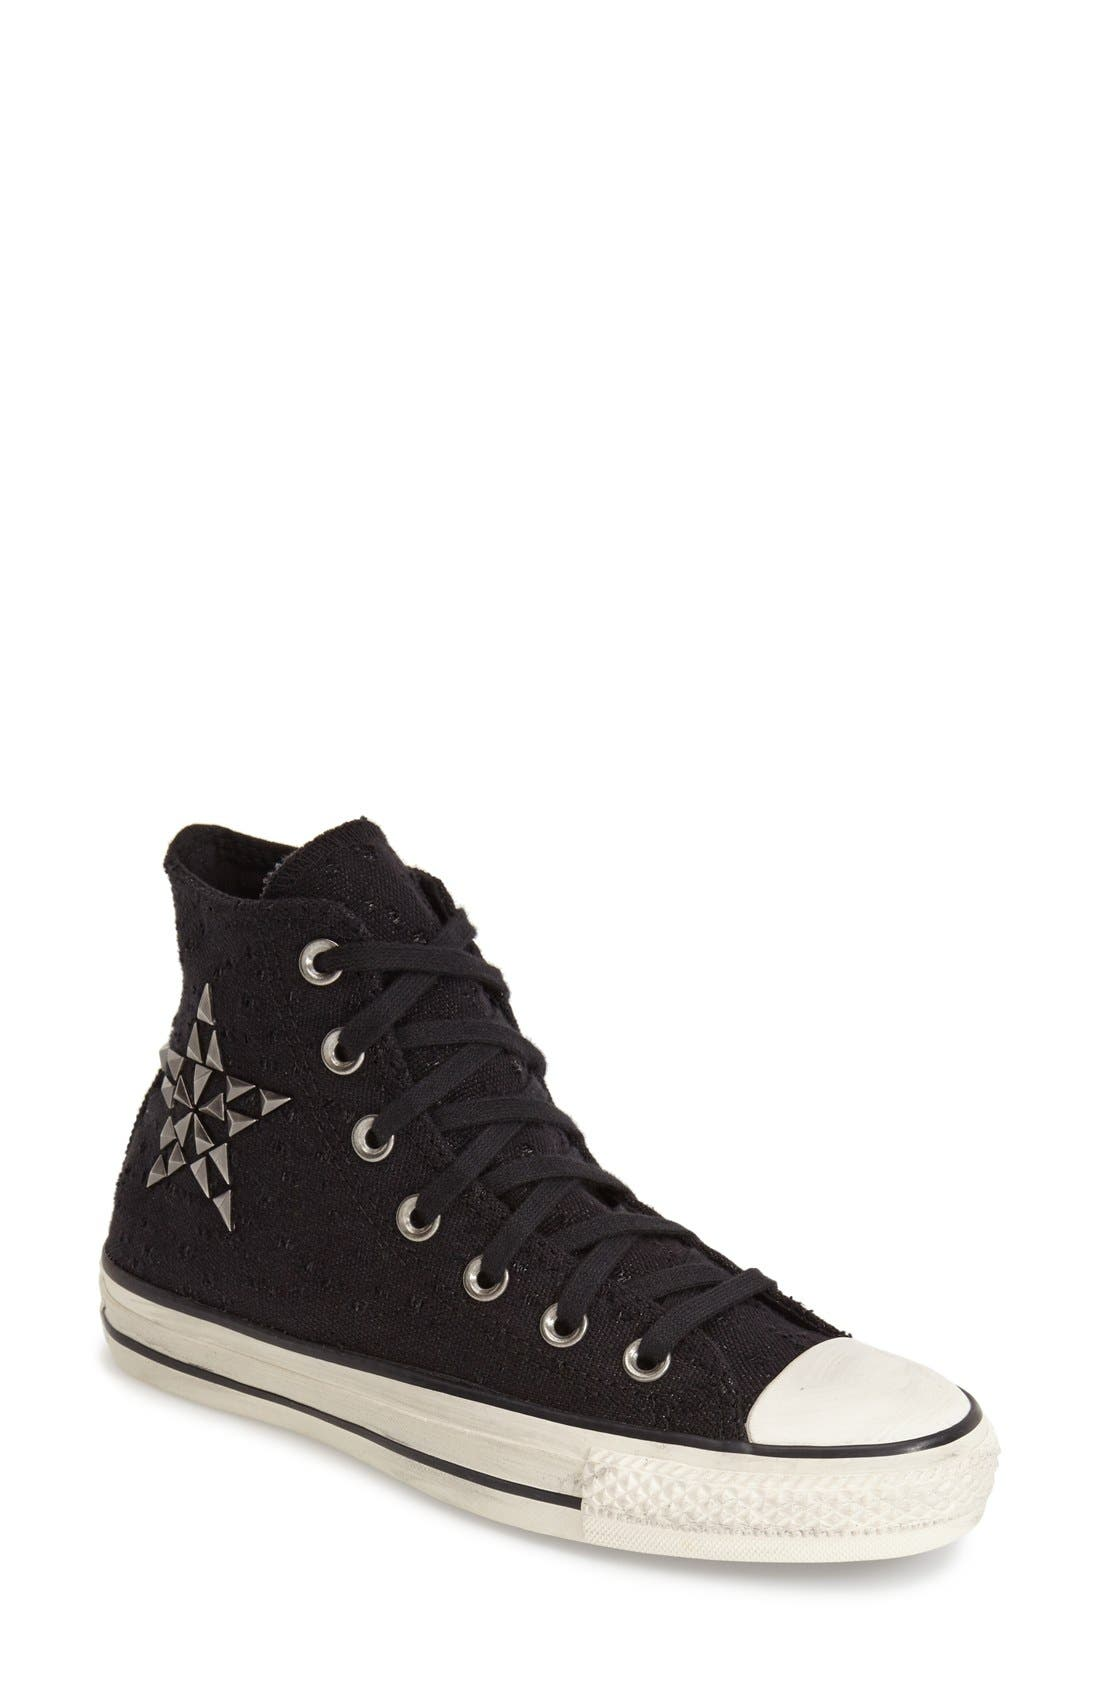 Main Image - Converse Chuck Taylor® All Star® 'Star Hardware' High Top Sneaker (Women)